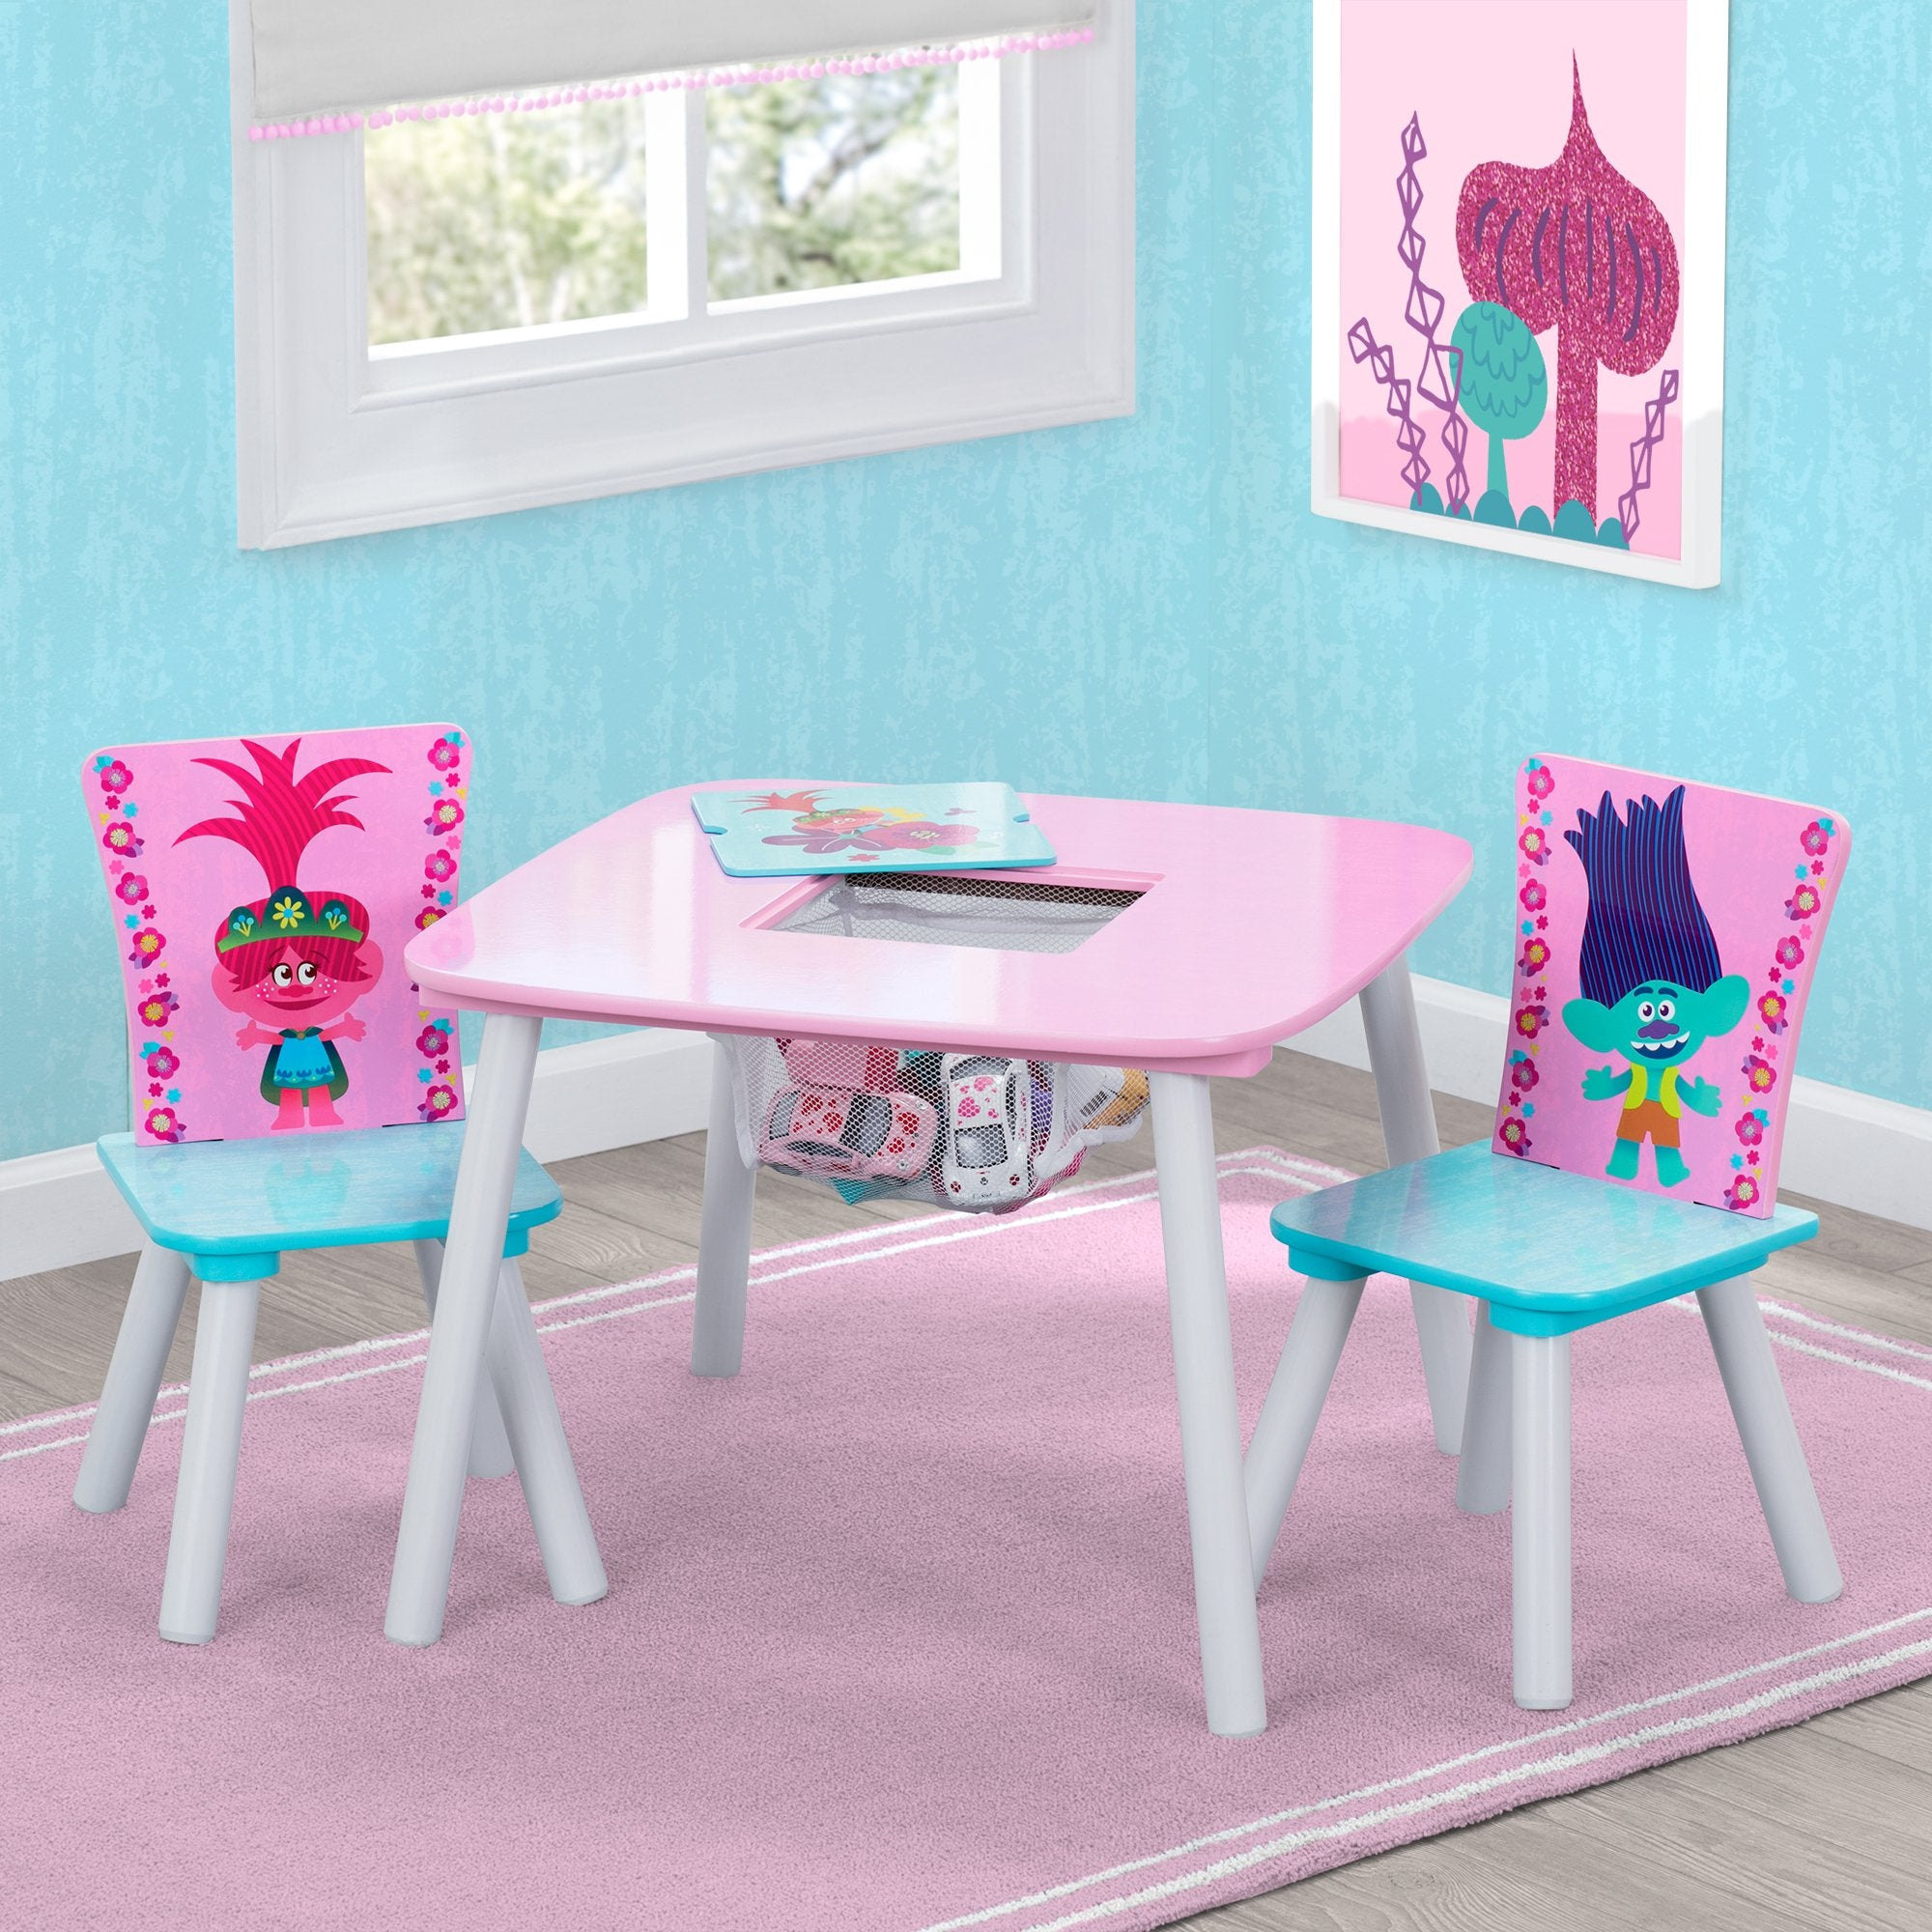 Trolls World Tour Table and Chair Set with Storage